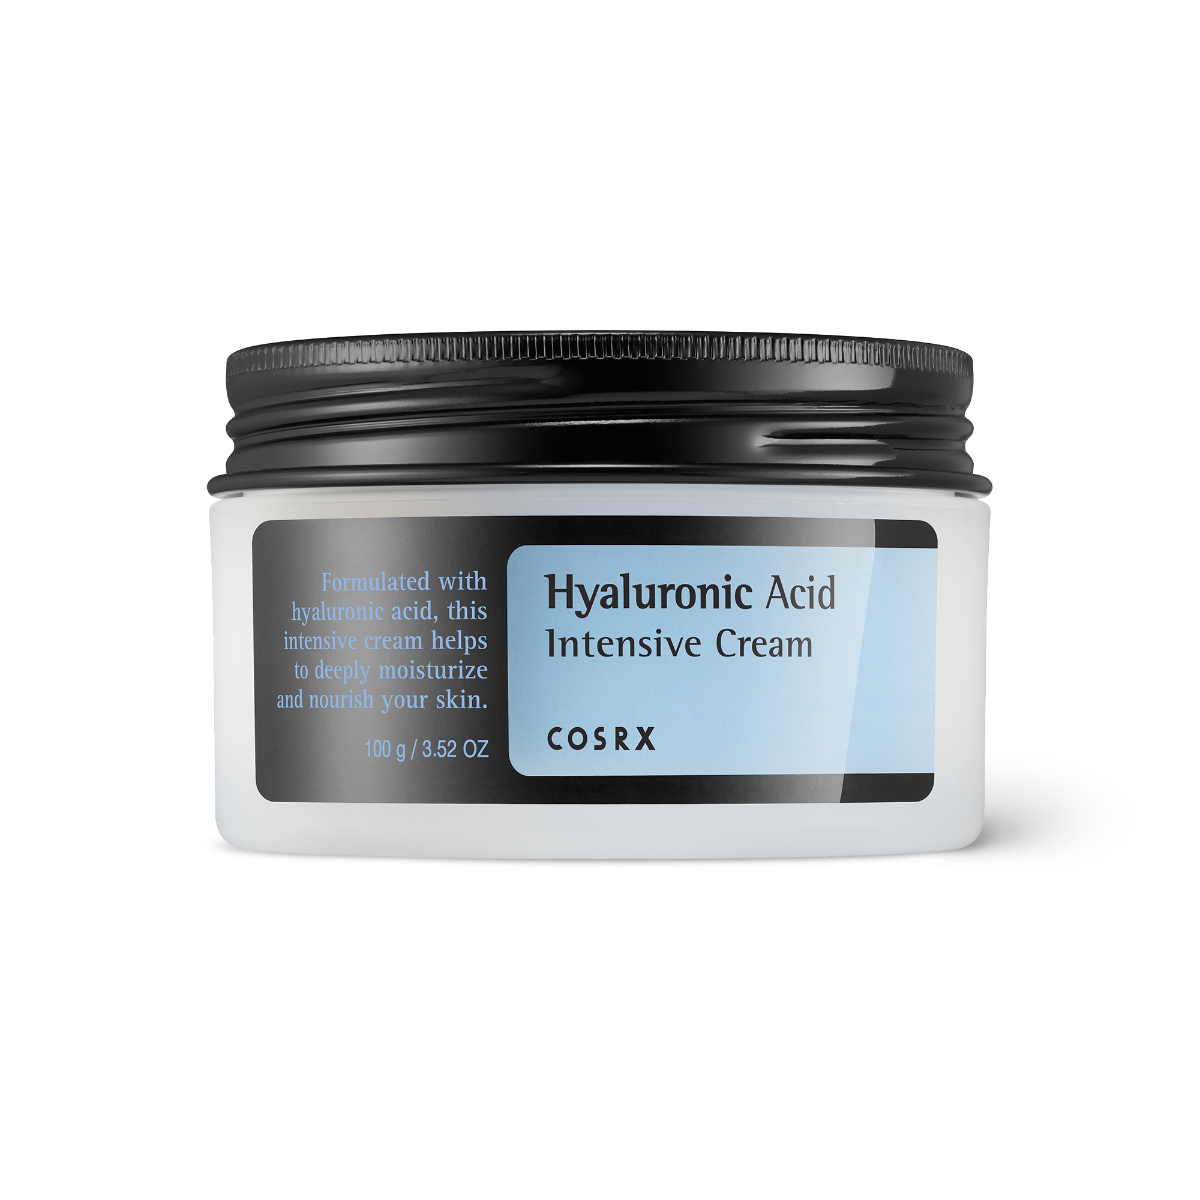 Cosrx - Hyaluronic Acid Intensive Cream